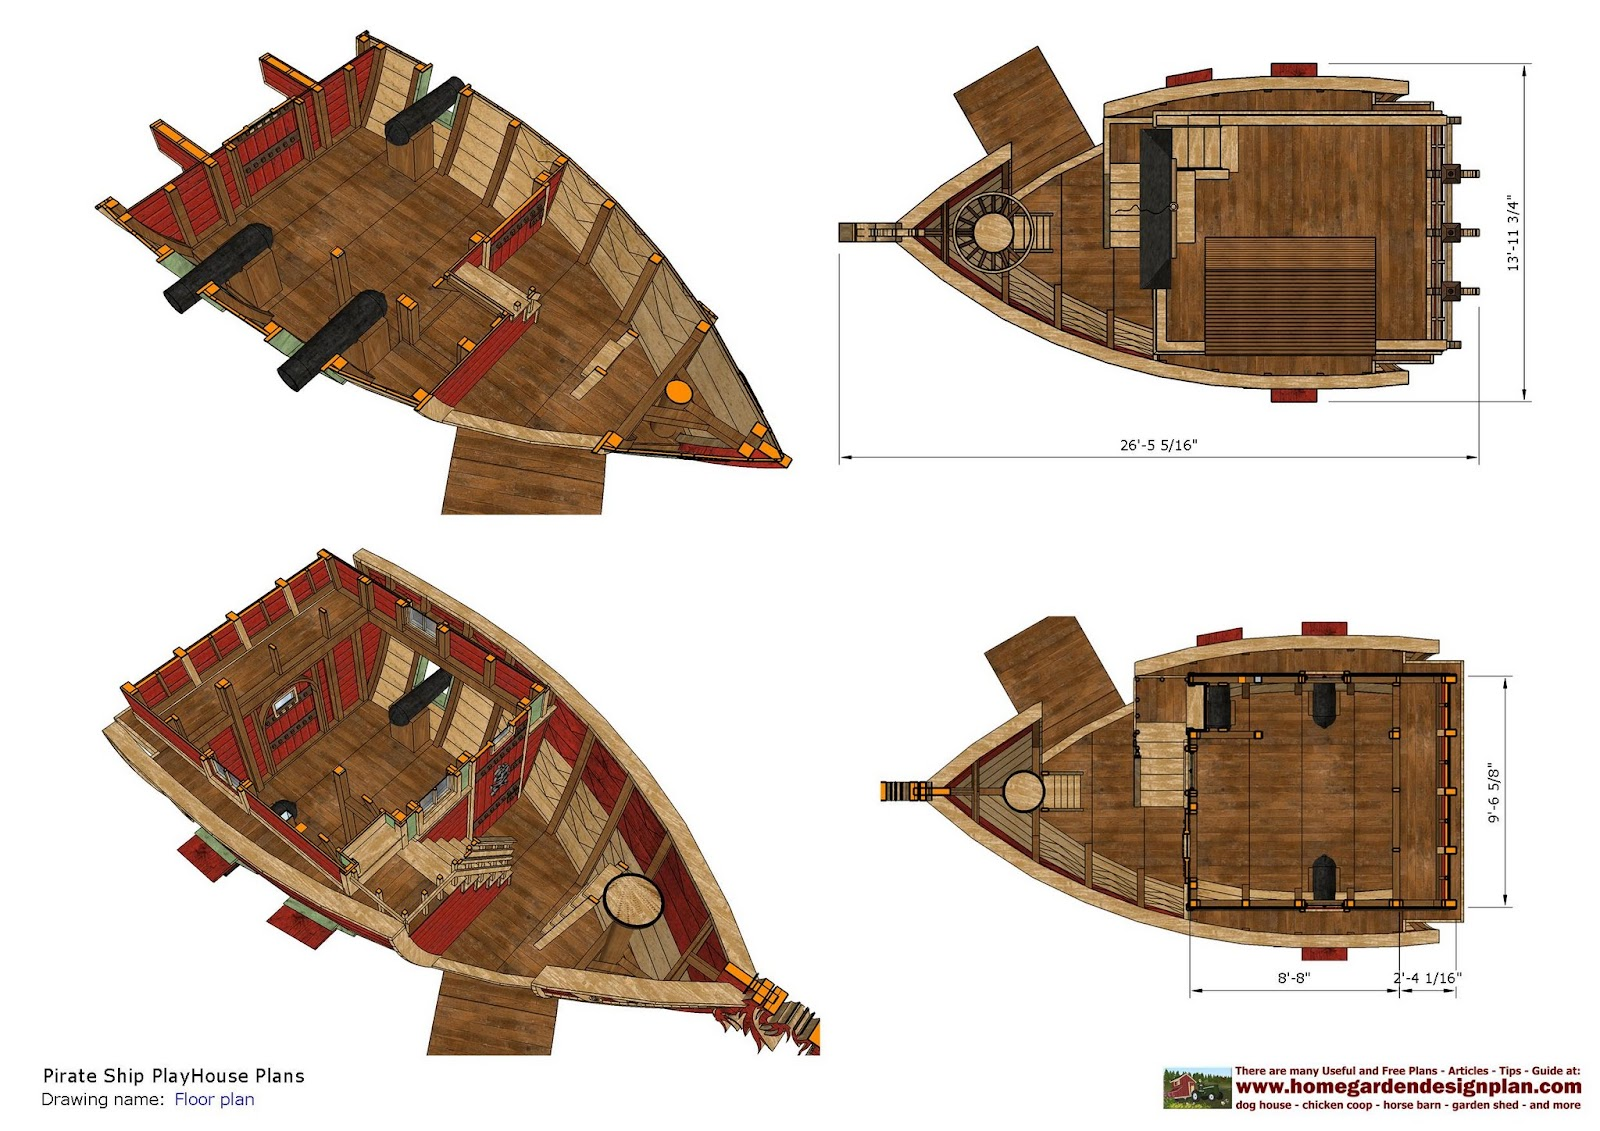 Home garden plans ps100 pirates ship playhouse plans for Homegardendesignplan